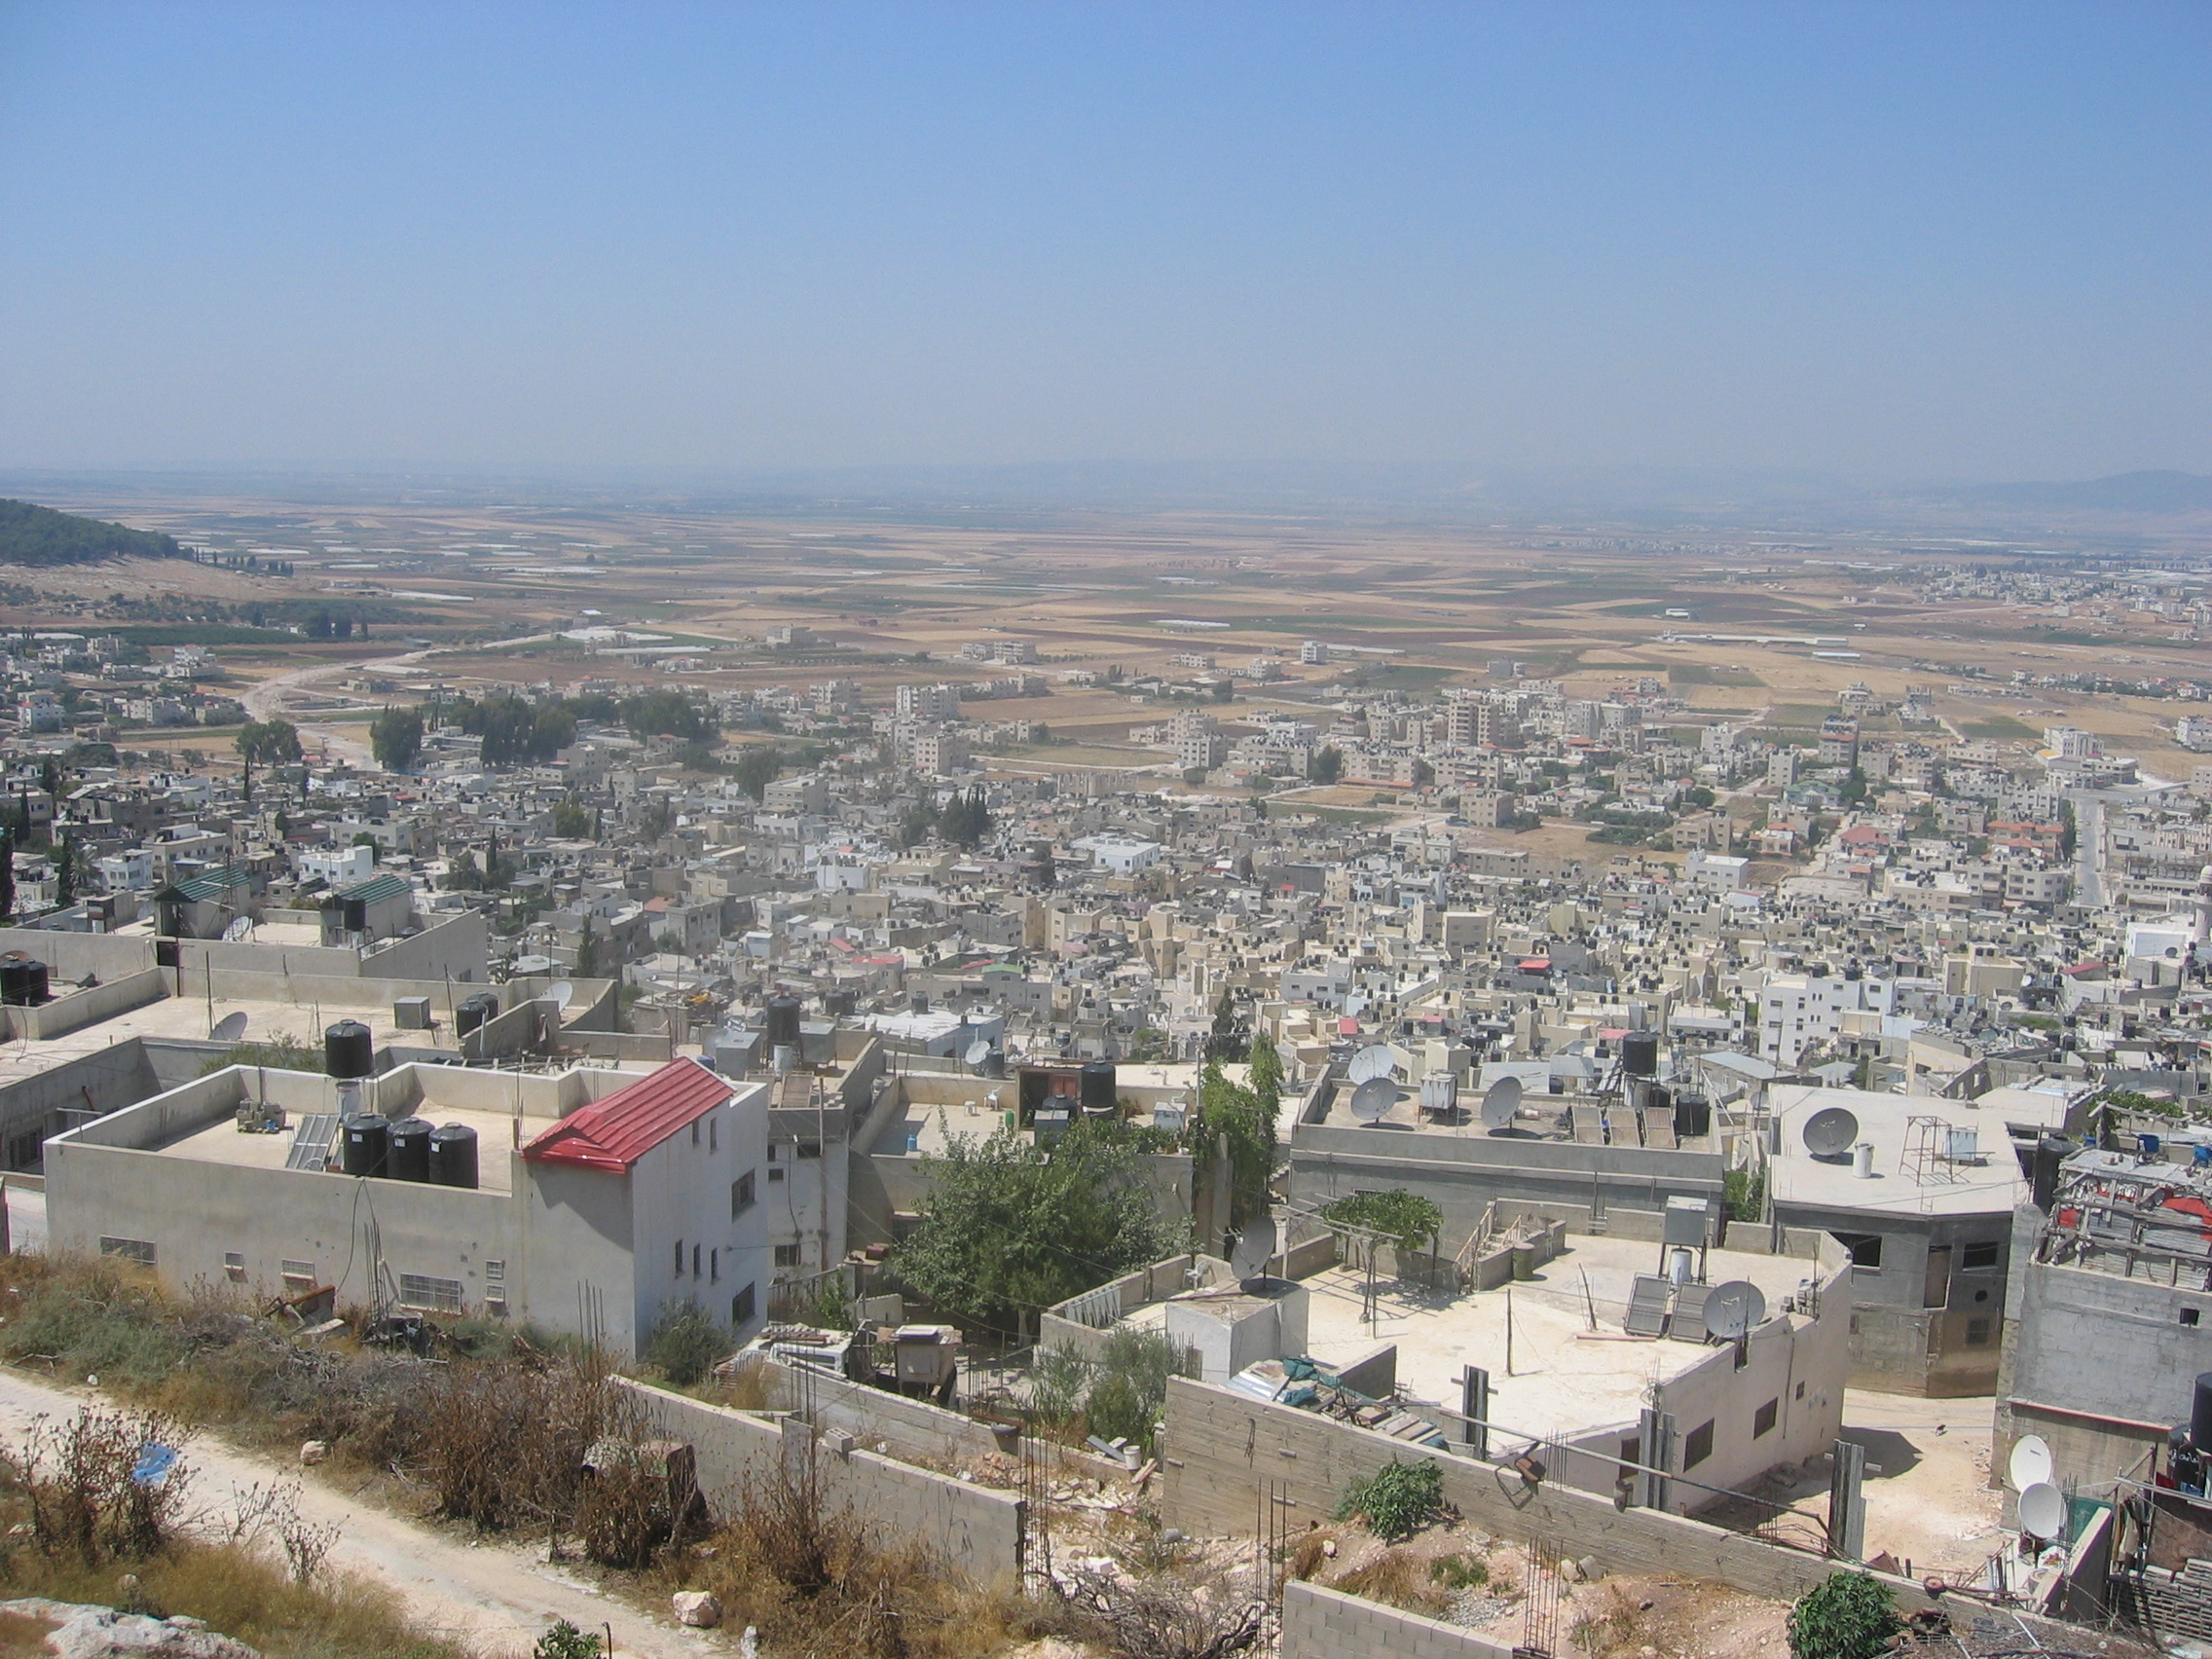 Jinin - جنين : General view of the refugee camp